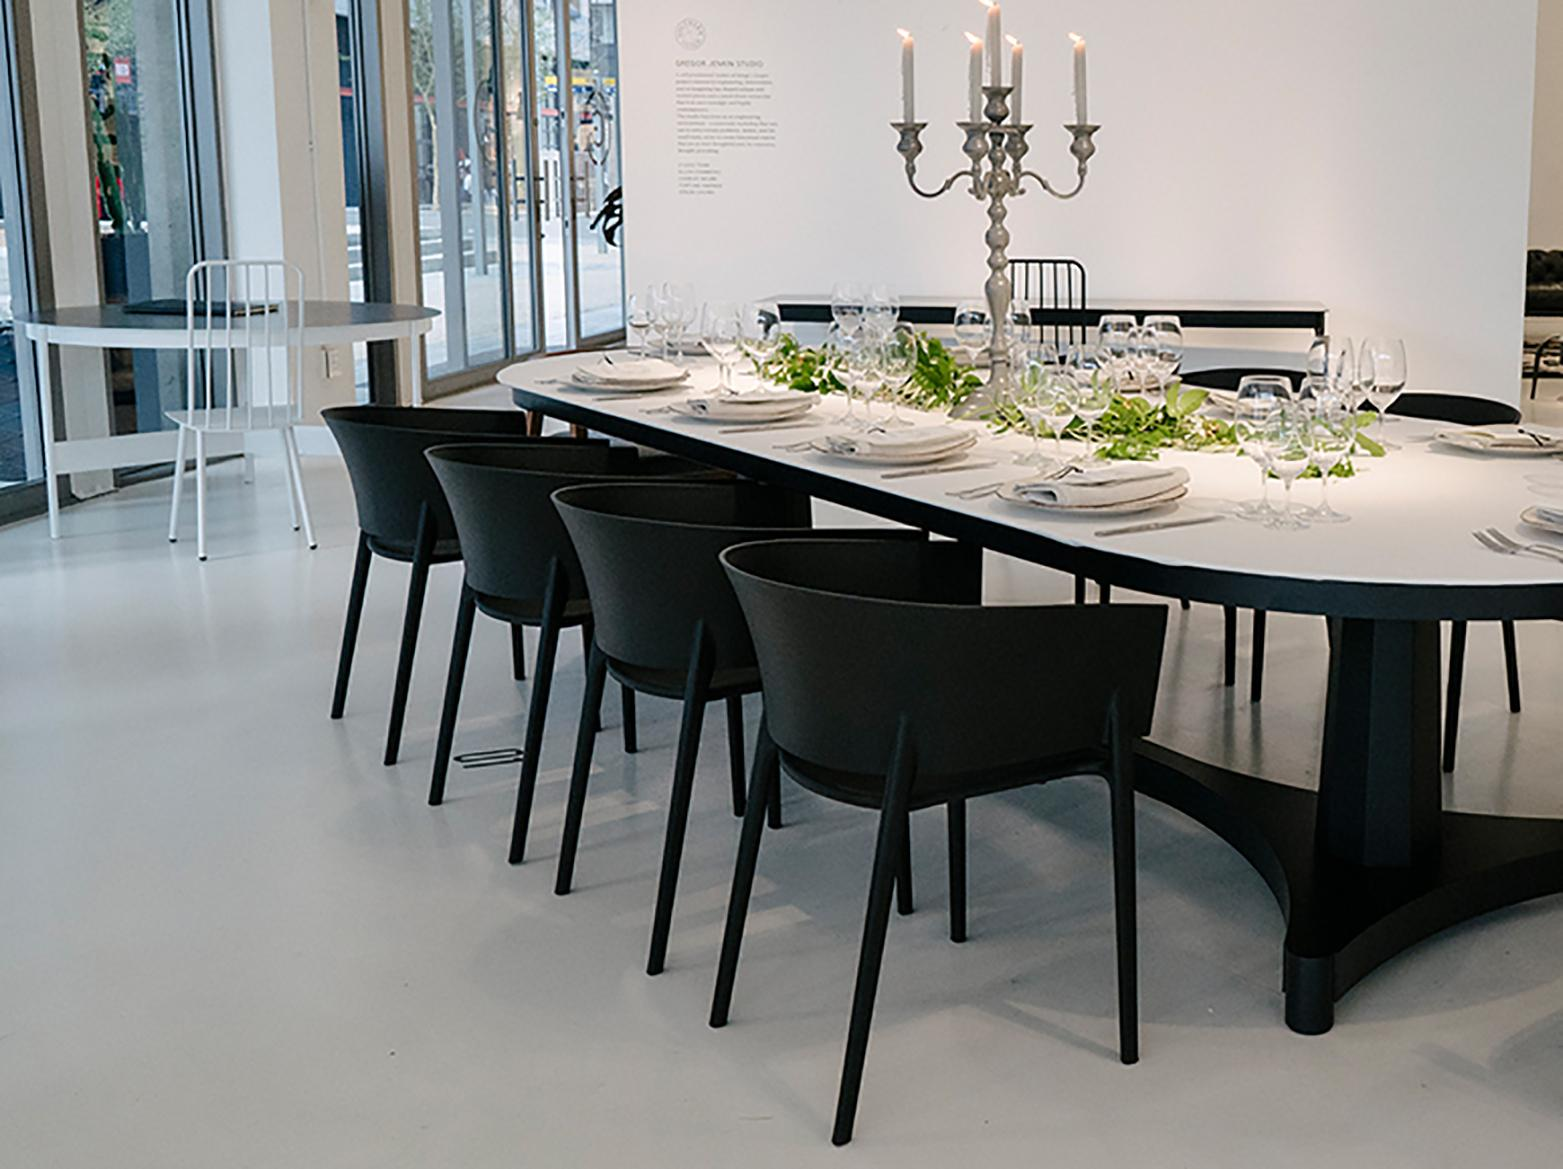 Gregor Jenkin Regent Tablet 12 14 Seat Steel And 3cr12 Dining Table For Sale At 1stdibs